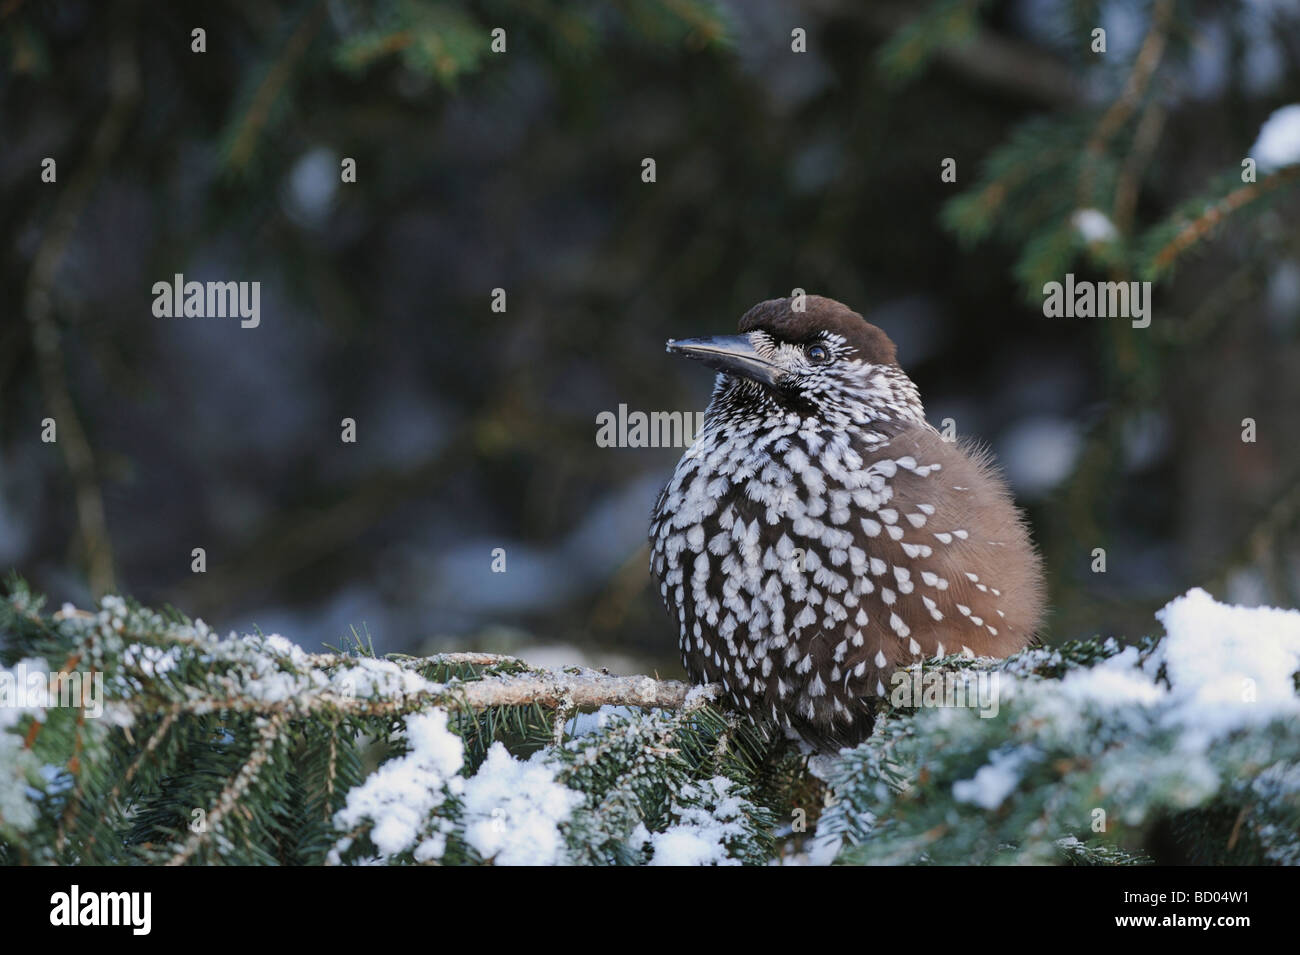 Spotted Nutcracker Nucifraga caryocatactes adult perched on Norway spruce ruffled by minus 15 Celsius Davos Switzerland - Stock Image